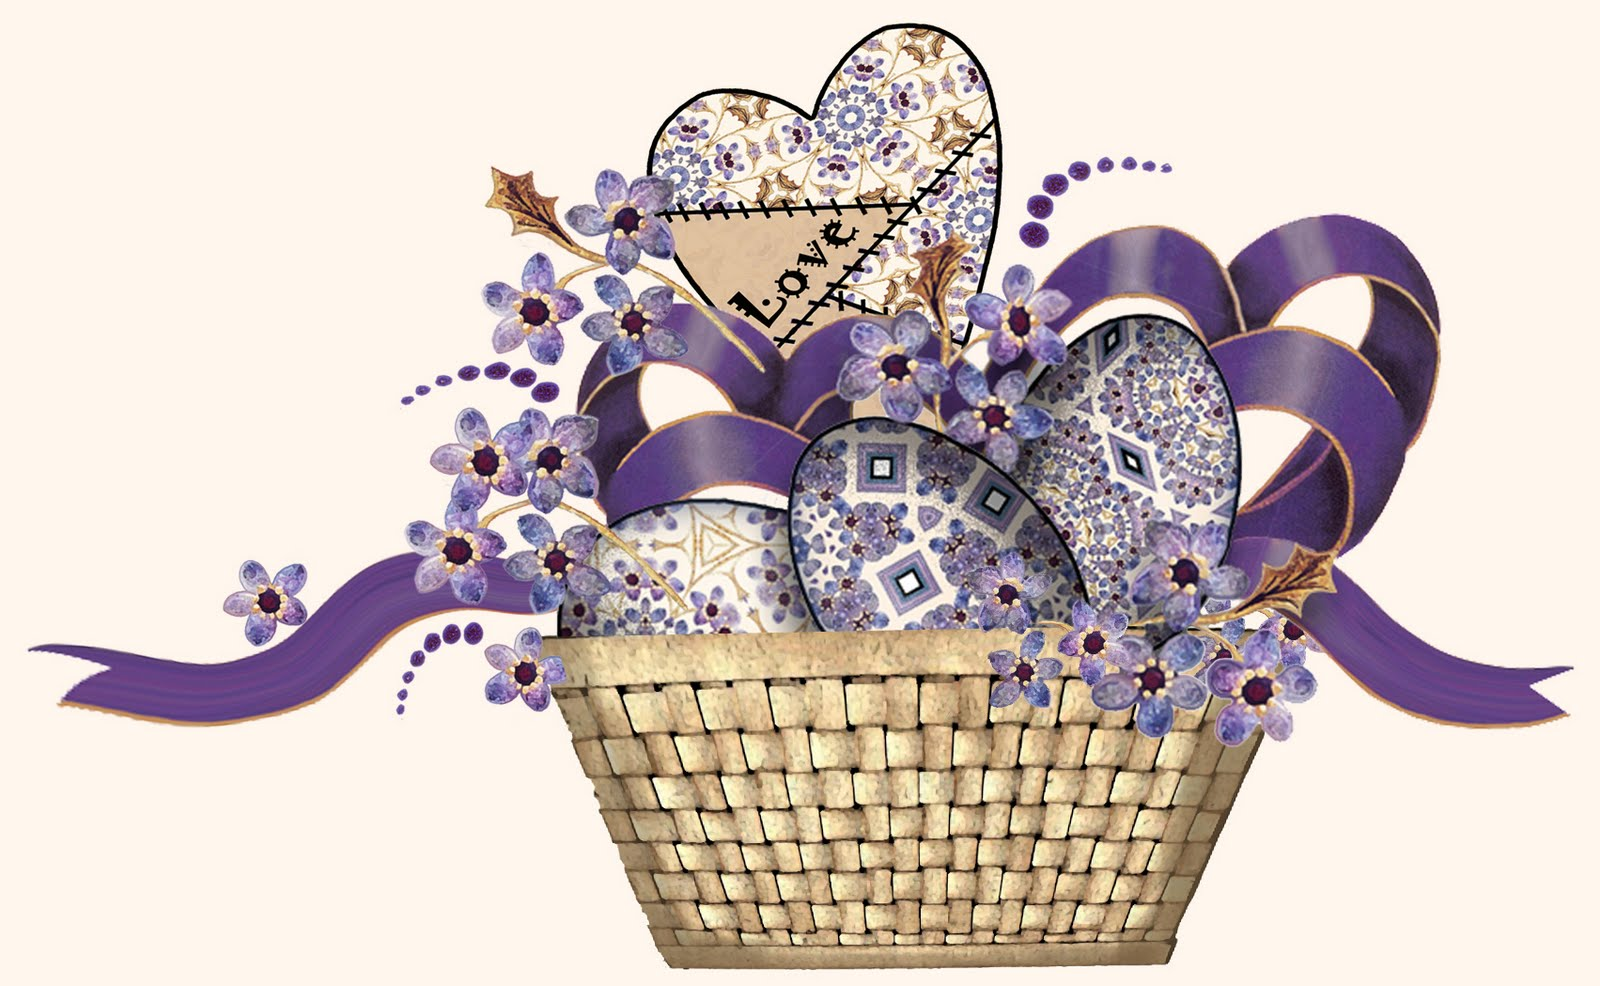 Art Raffle Basket : Clip art gift baskets clipart suggest